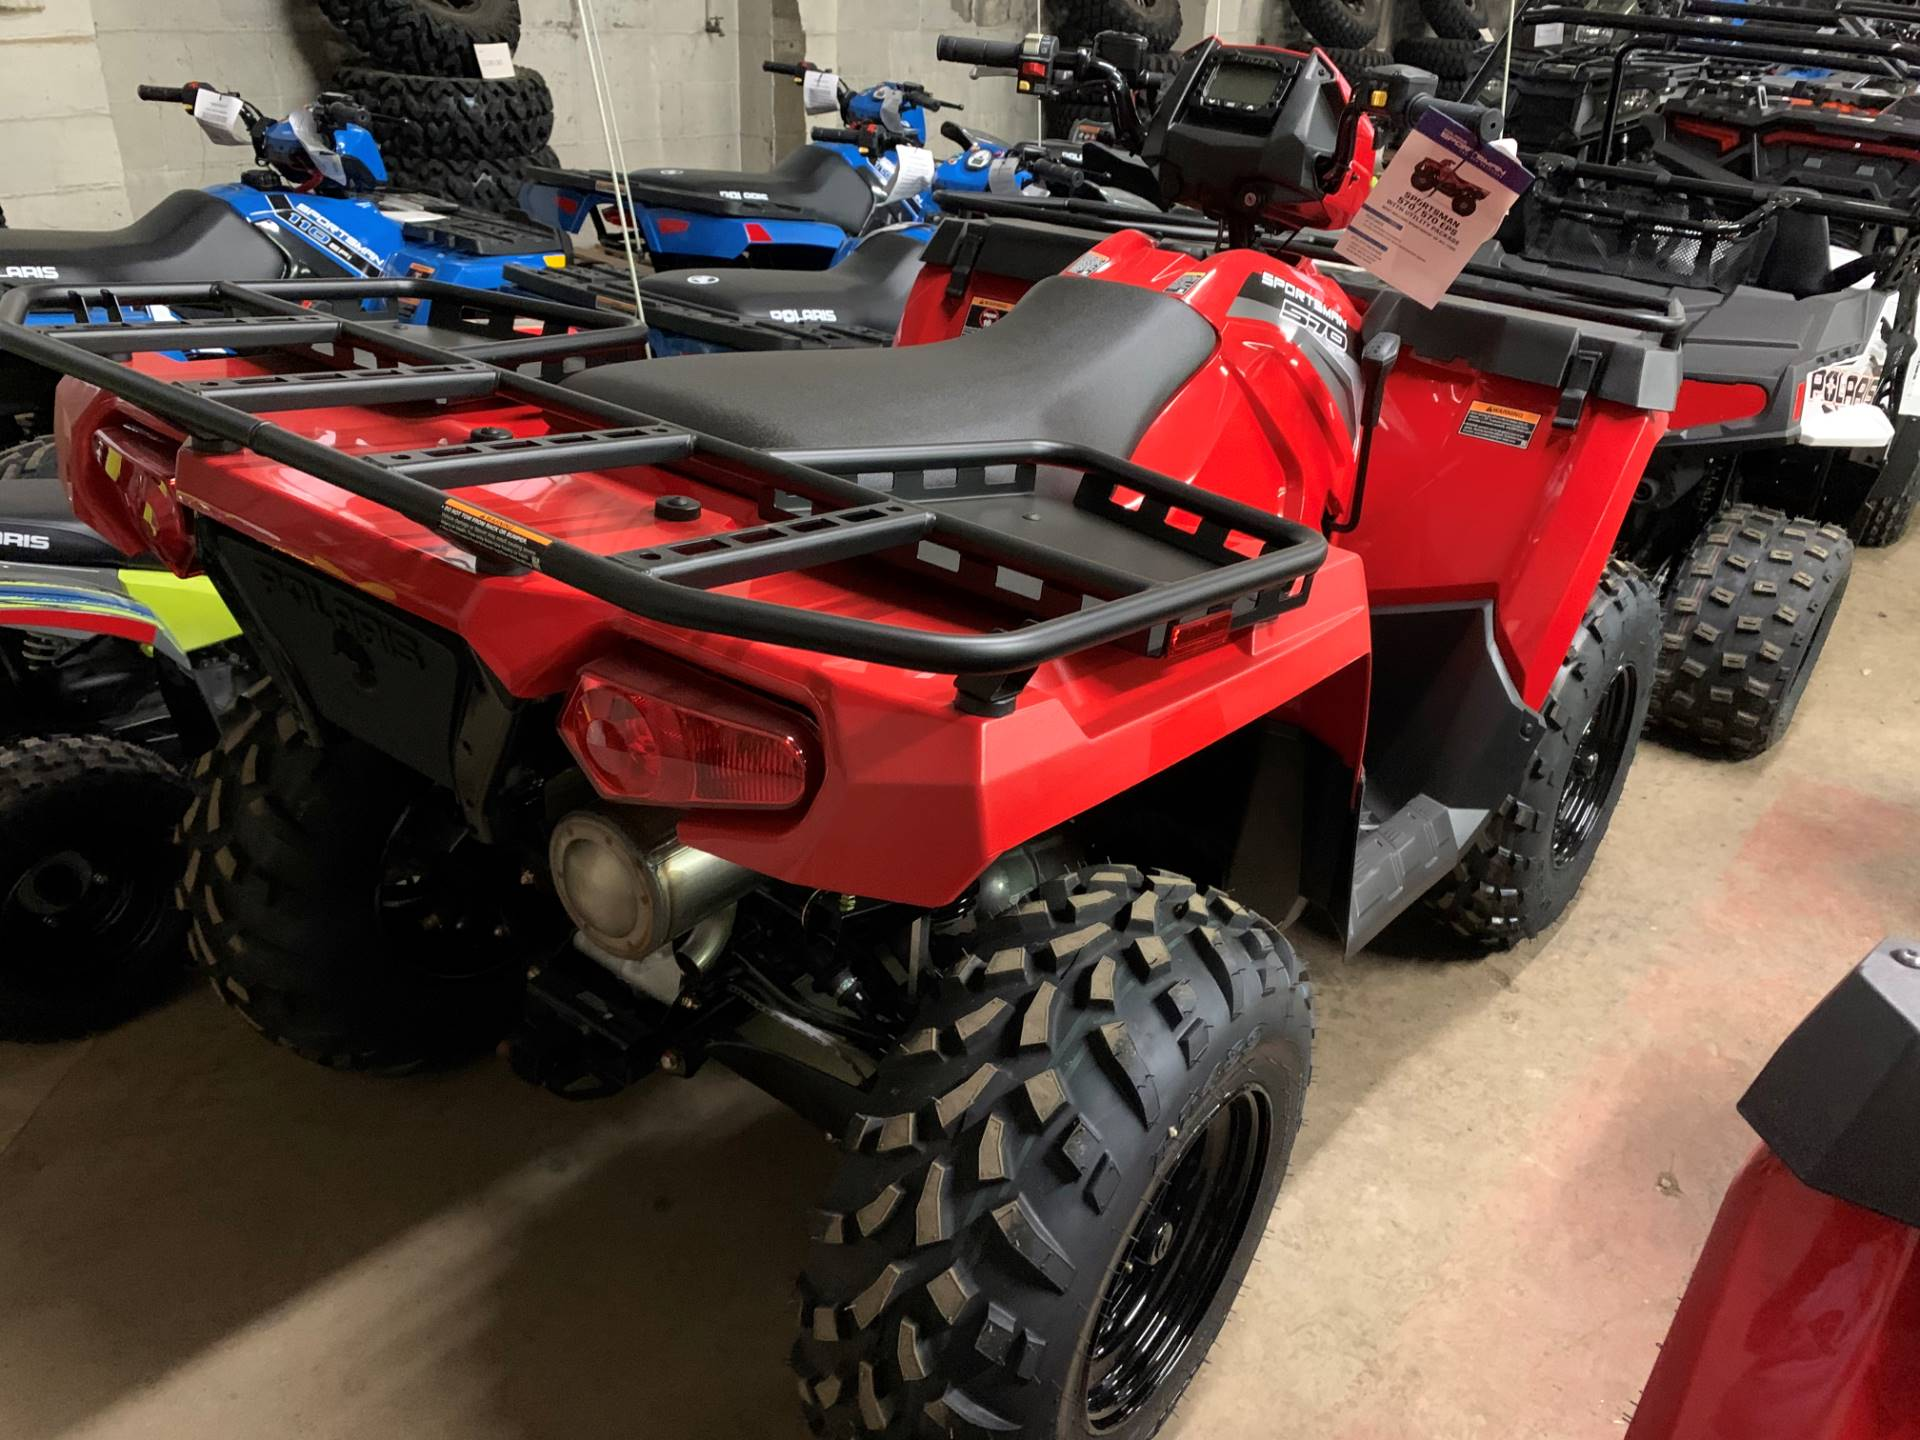 2020 Polaris Sportsman 570 Utility Package in Coraopolis, Pennsylvania - Photo 5